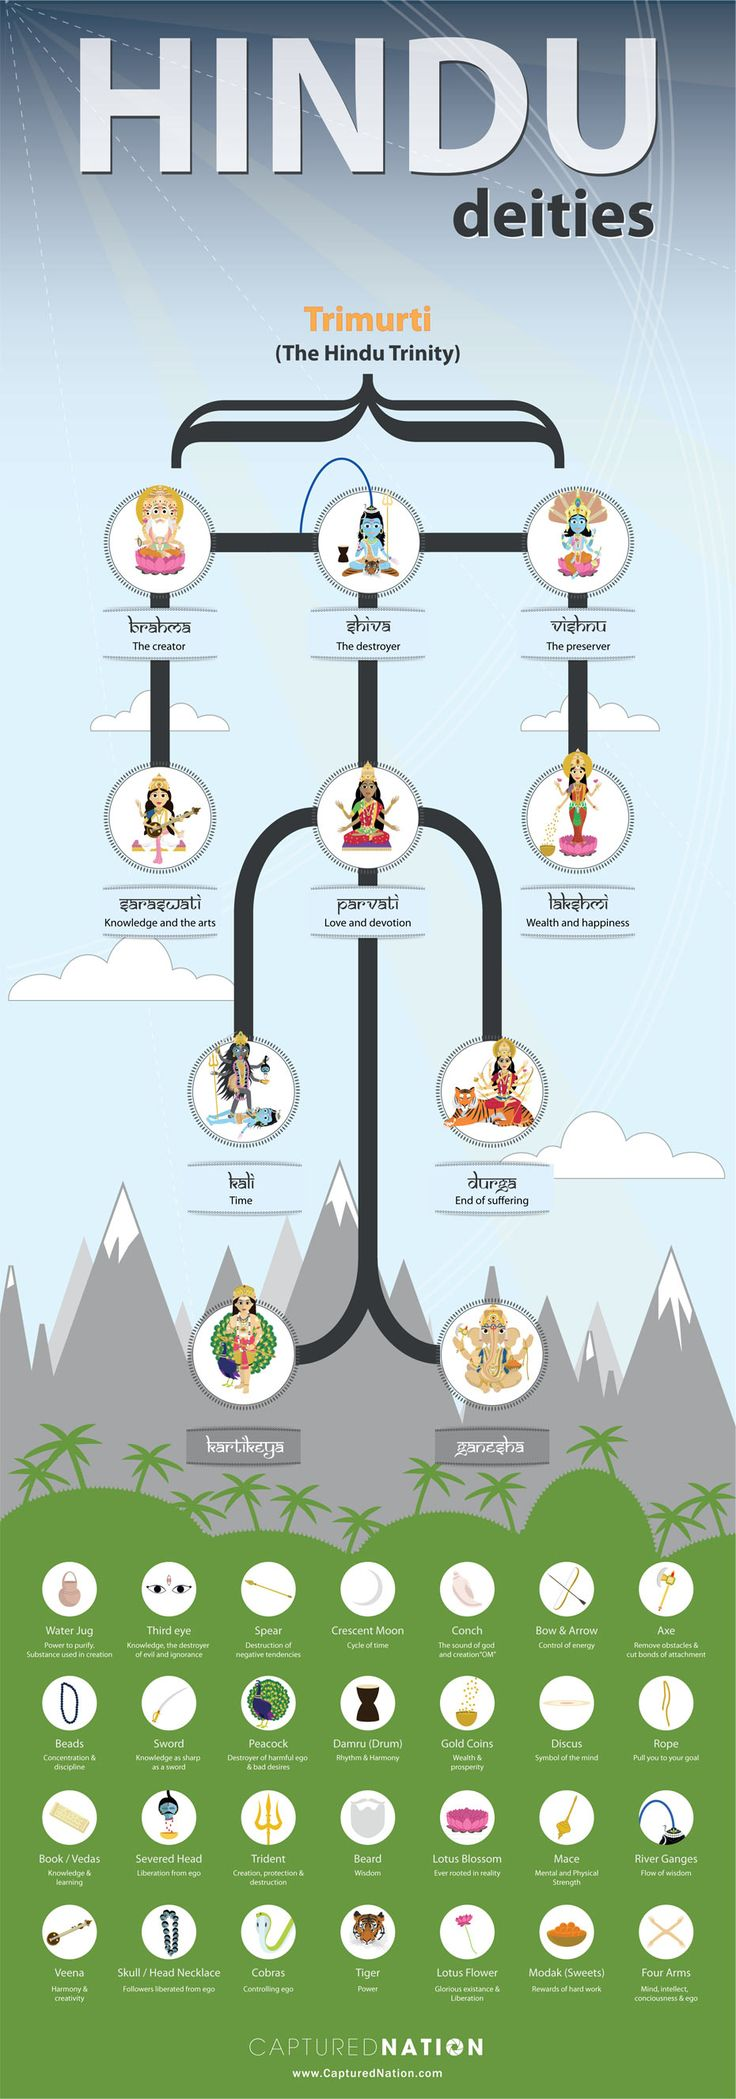 Ten Major #Gods and #Goddesses of #Hinduism - Do you fancy an infographic? There are a lot of them online, but if you want your own please visit http://www.linfografico.com/prezzi/ Online girano molte infografiche, se ne vuoi realizzare una tutta tua visita http://www.linfografico.com/prezzi Diez principales dioses y diosas del hinduismo ¿Quiere una infografía? Hay una gran cantidad de ellos on line, pero si usted quiere el suyo propio visite http://www.linfografico.com/prezzi/ línea